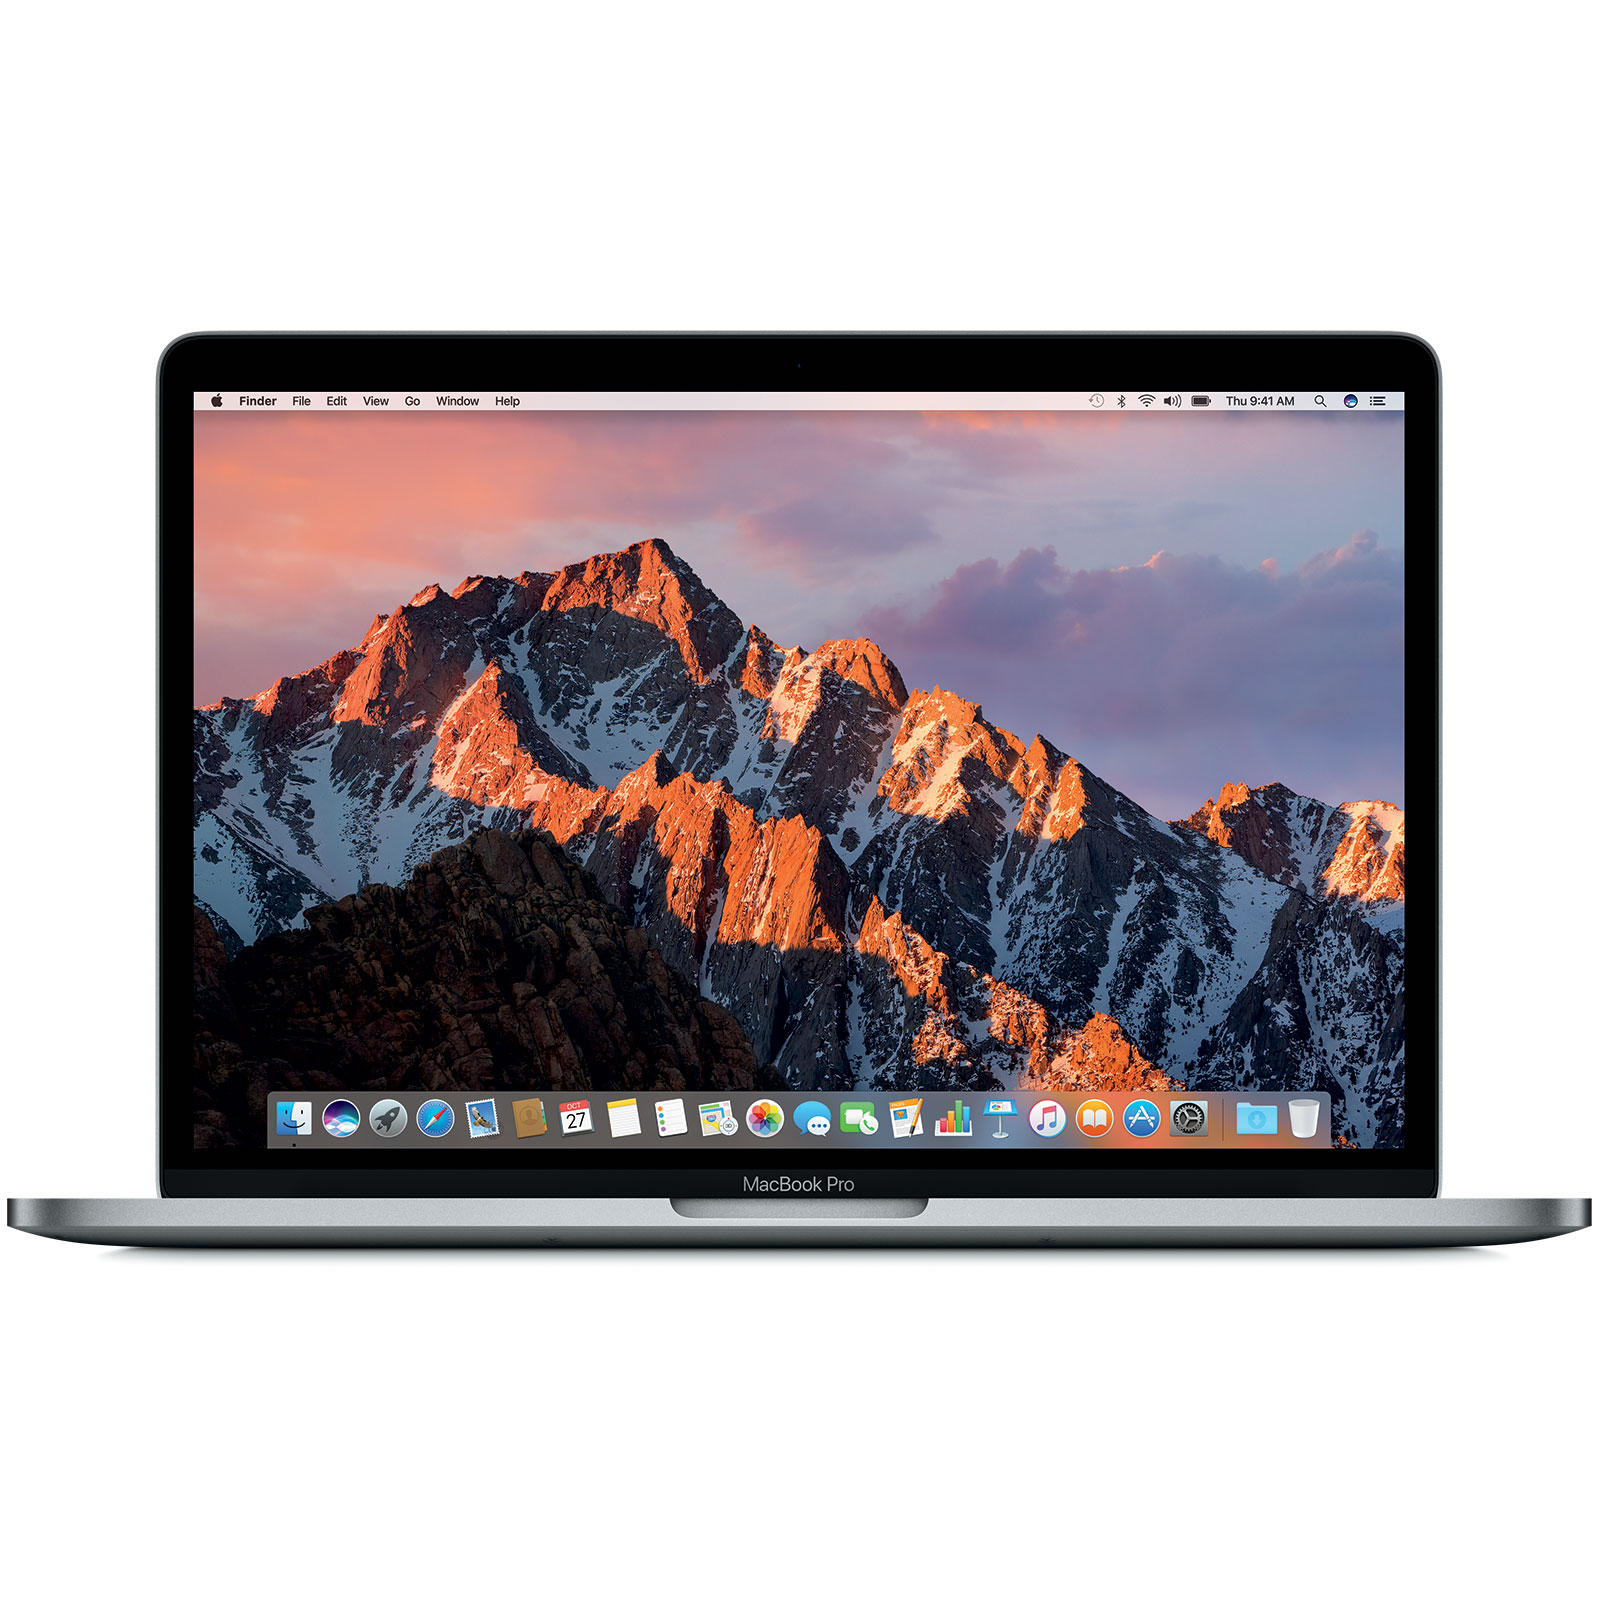 "Macbook Apple MacBook Pro 13"" Gris sidéral (MR9Q2FN/A) Intel Core i5 (2.3 GHz) 8 Go SSD 256 Go 13.3"" LED Wi-Fi AC/Bluetooth Webcam Mac OS High Sierra"